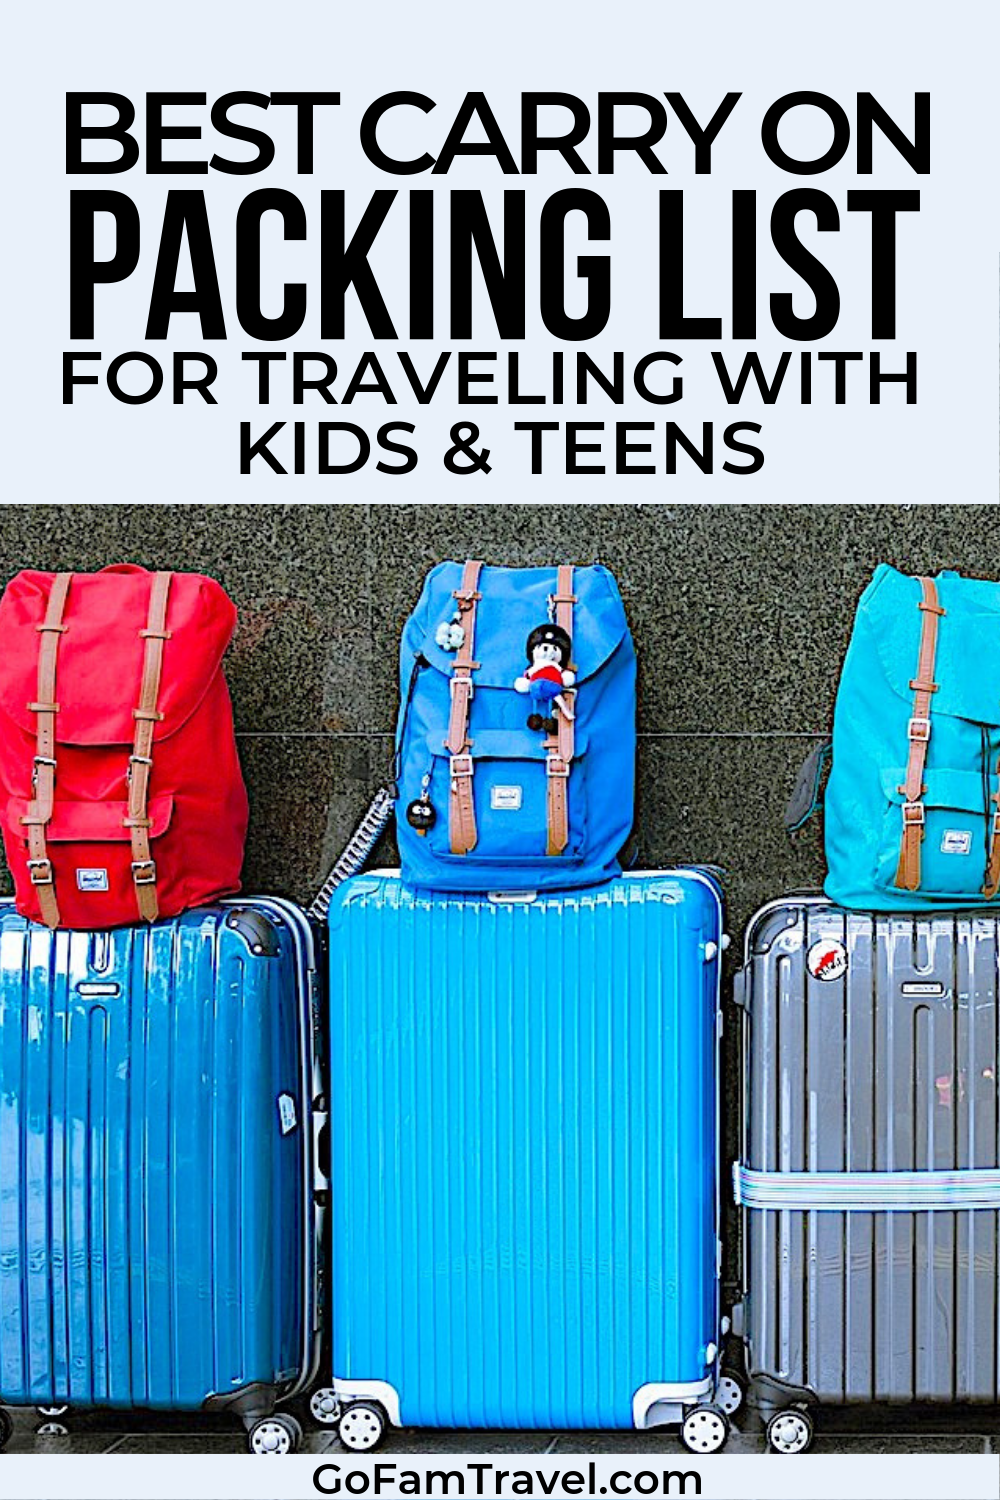 The Ultimate Carry On Packing List  What to Pack for Your Trip Abroad is part of The Ultimate Carry On Packing List What To Pack For Your - Never check a bag again! Save time and money by learning how to pack carry on for your trip abroad  Get the ultimate packing list & tips for one bag travel from an experienced traveler